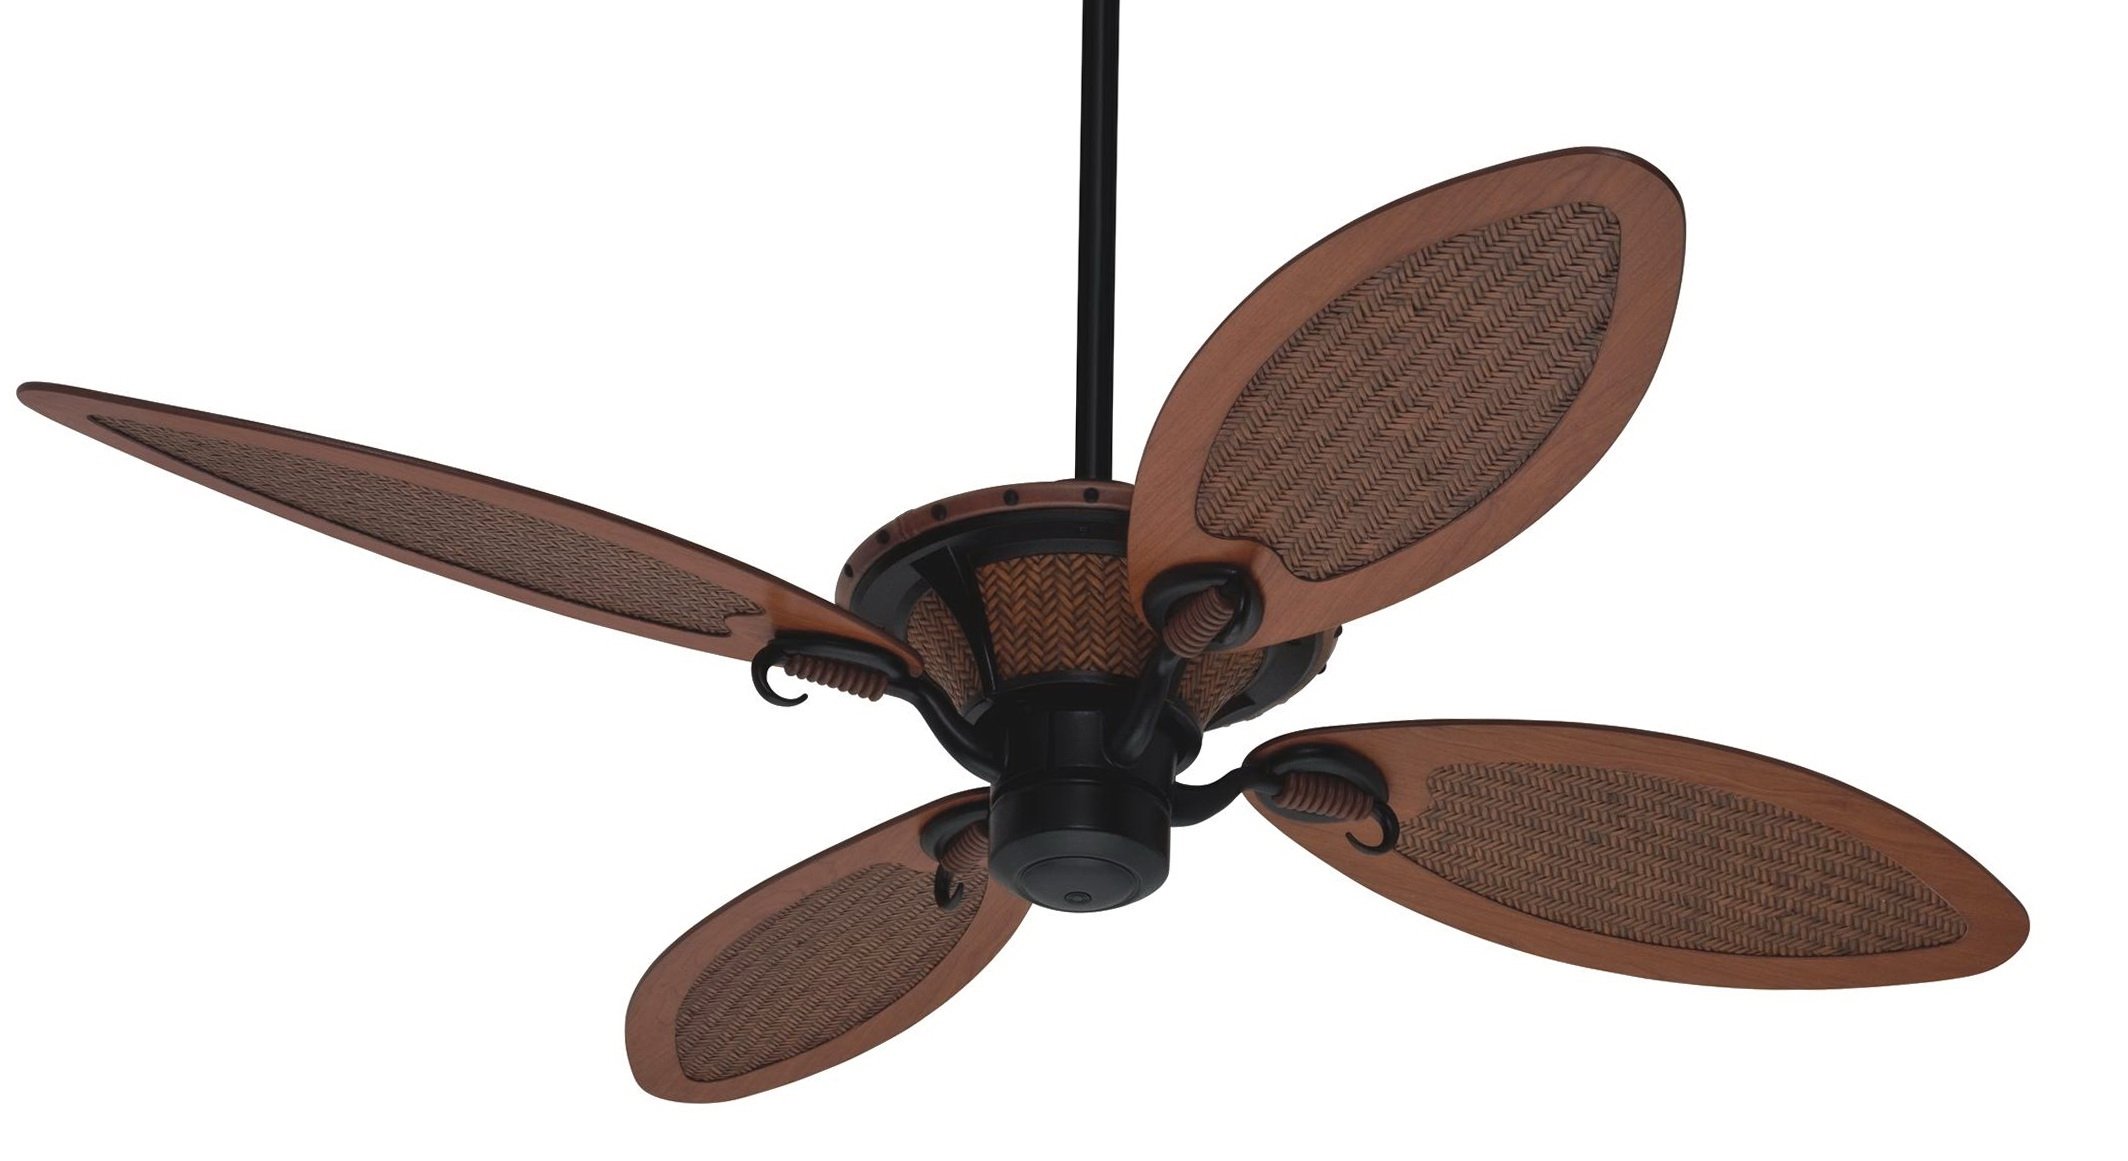 Most Recently Released Ceiling Fans With Lights And Remote Tropical Outdoor Ceiling Fans In Tropical Outdoor Ceiling Fans With Lights (View 4 of 20)